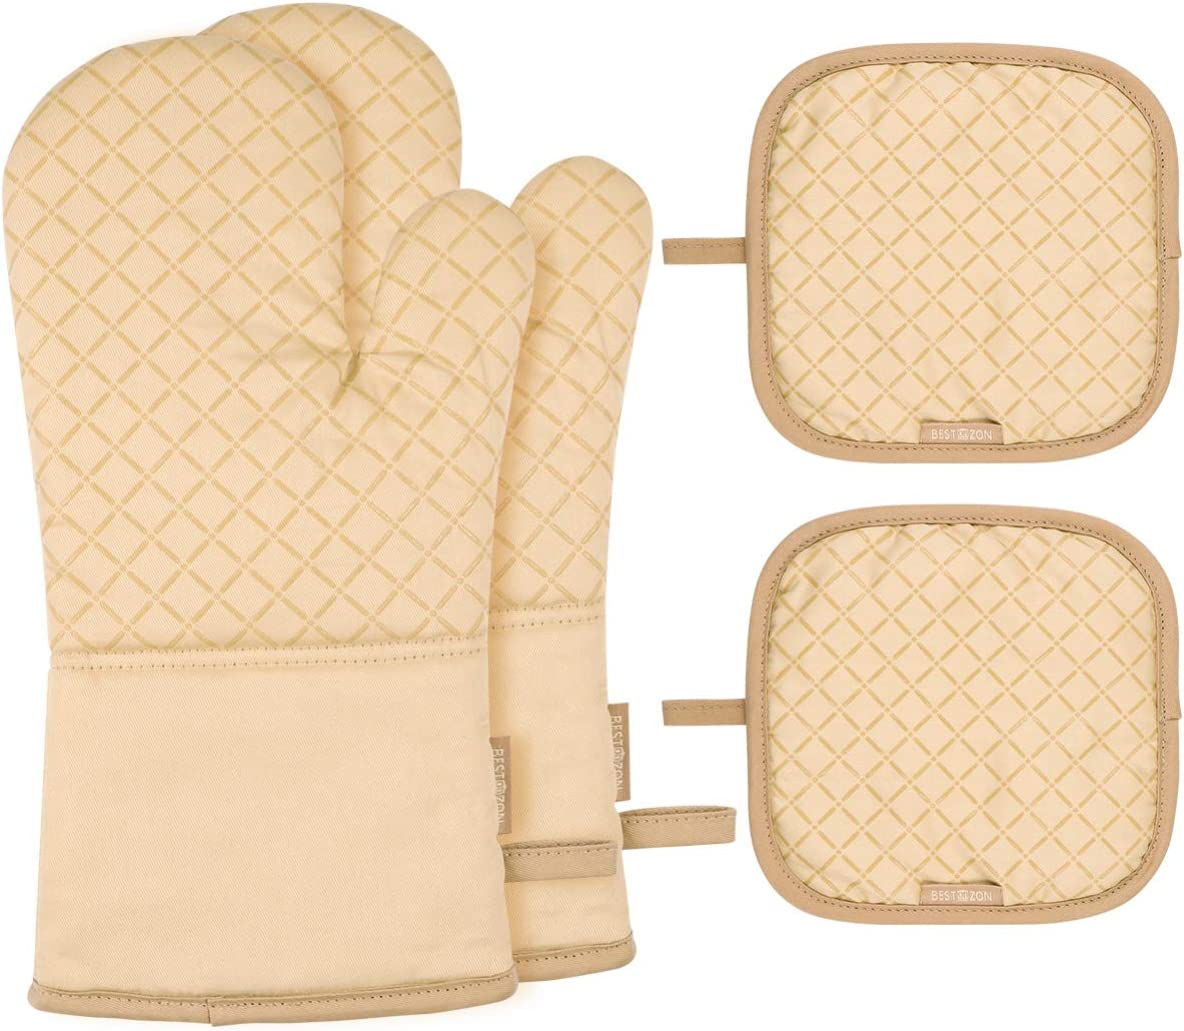 BESTonZON 4PCS Heat Resistant Oven Mitts and Pot Holders, Soft Cotton Lining with Non-Slip Surface for Safe BBQ Cooking Baking Grilling(Beige)